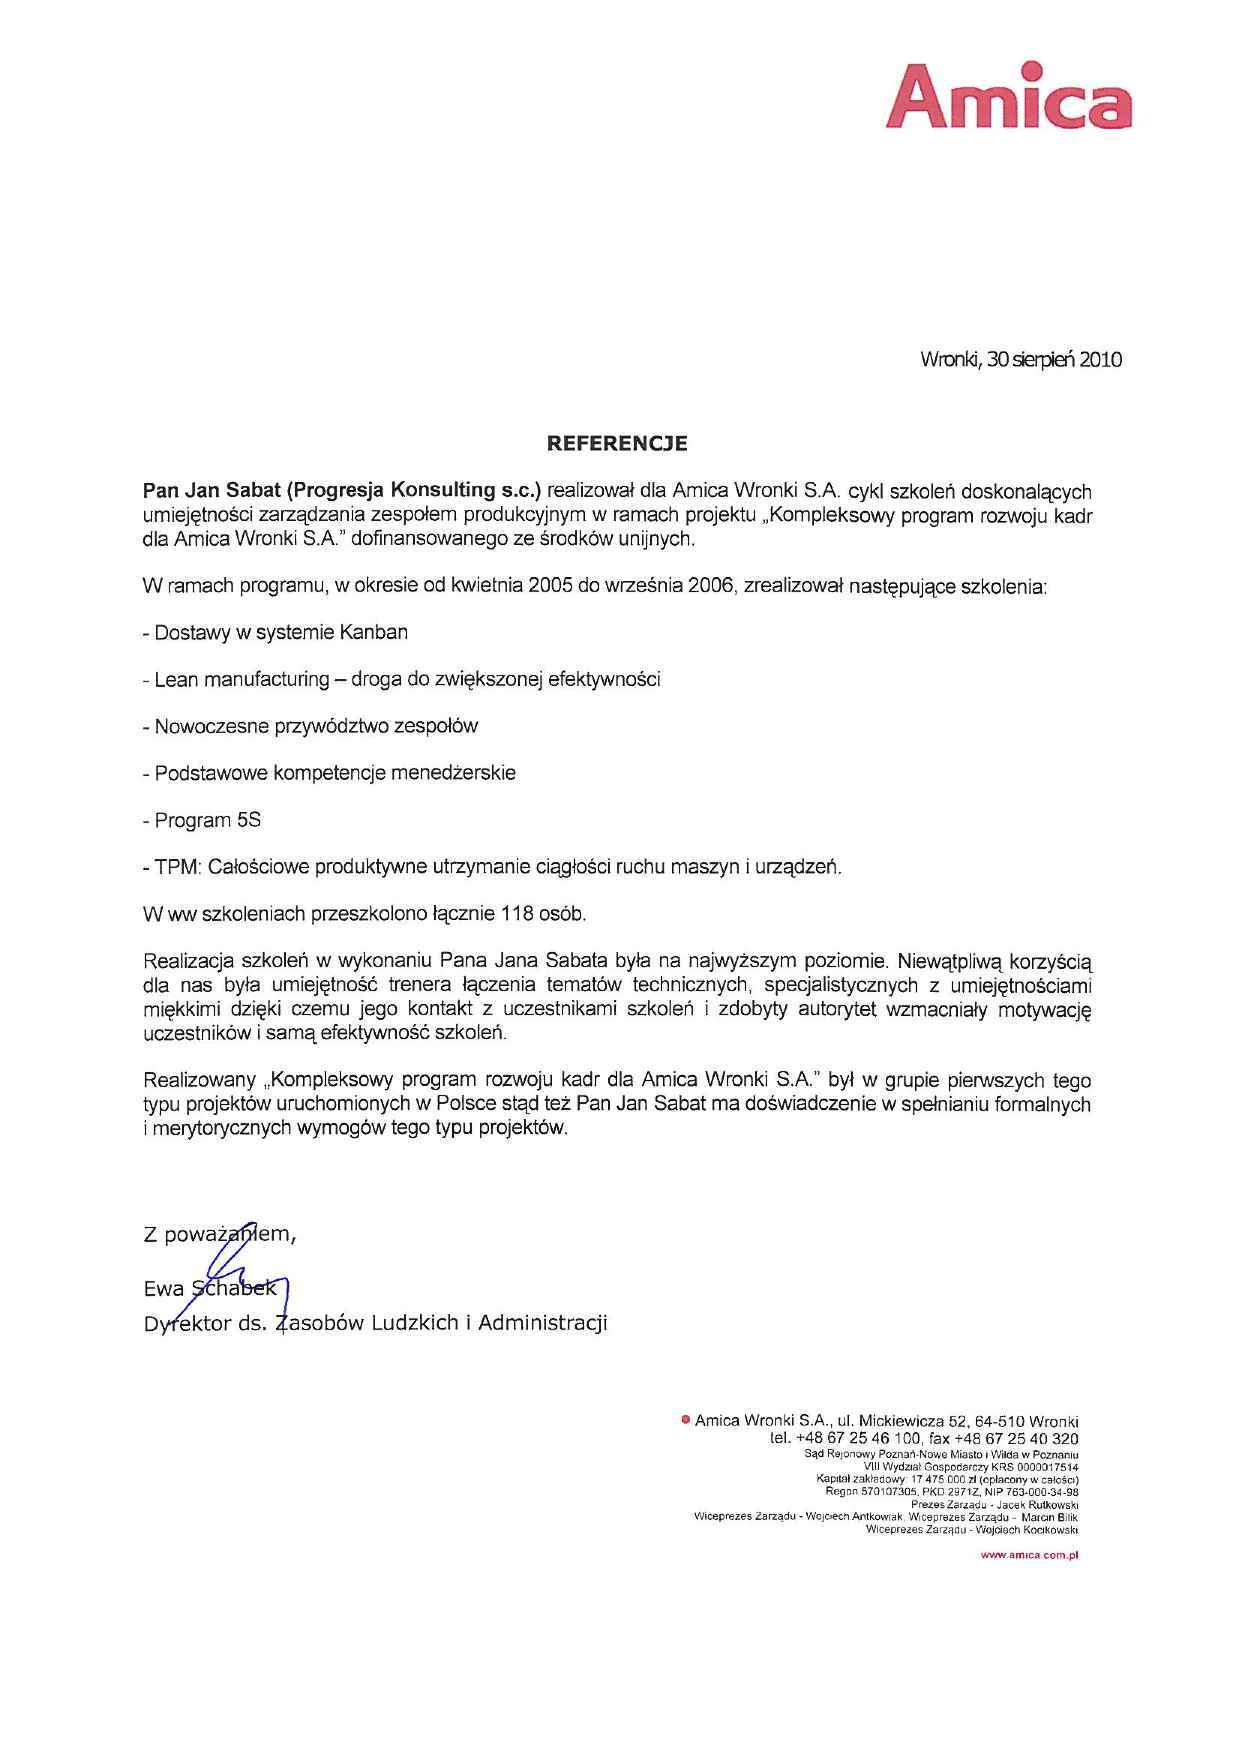 Sabat Consulting - Amica - referencje